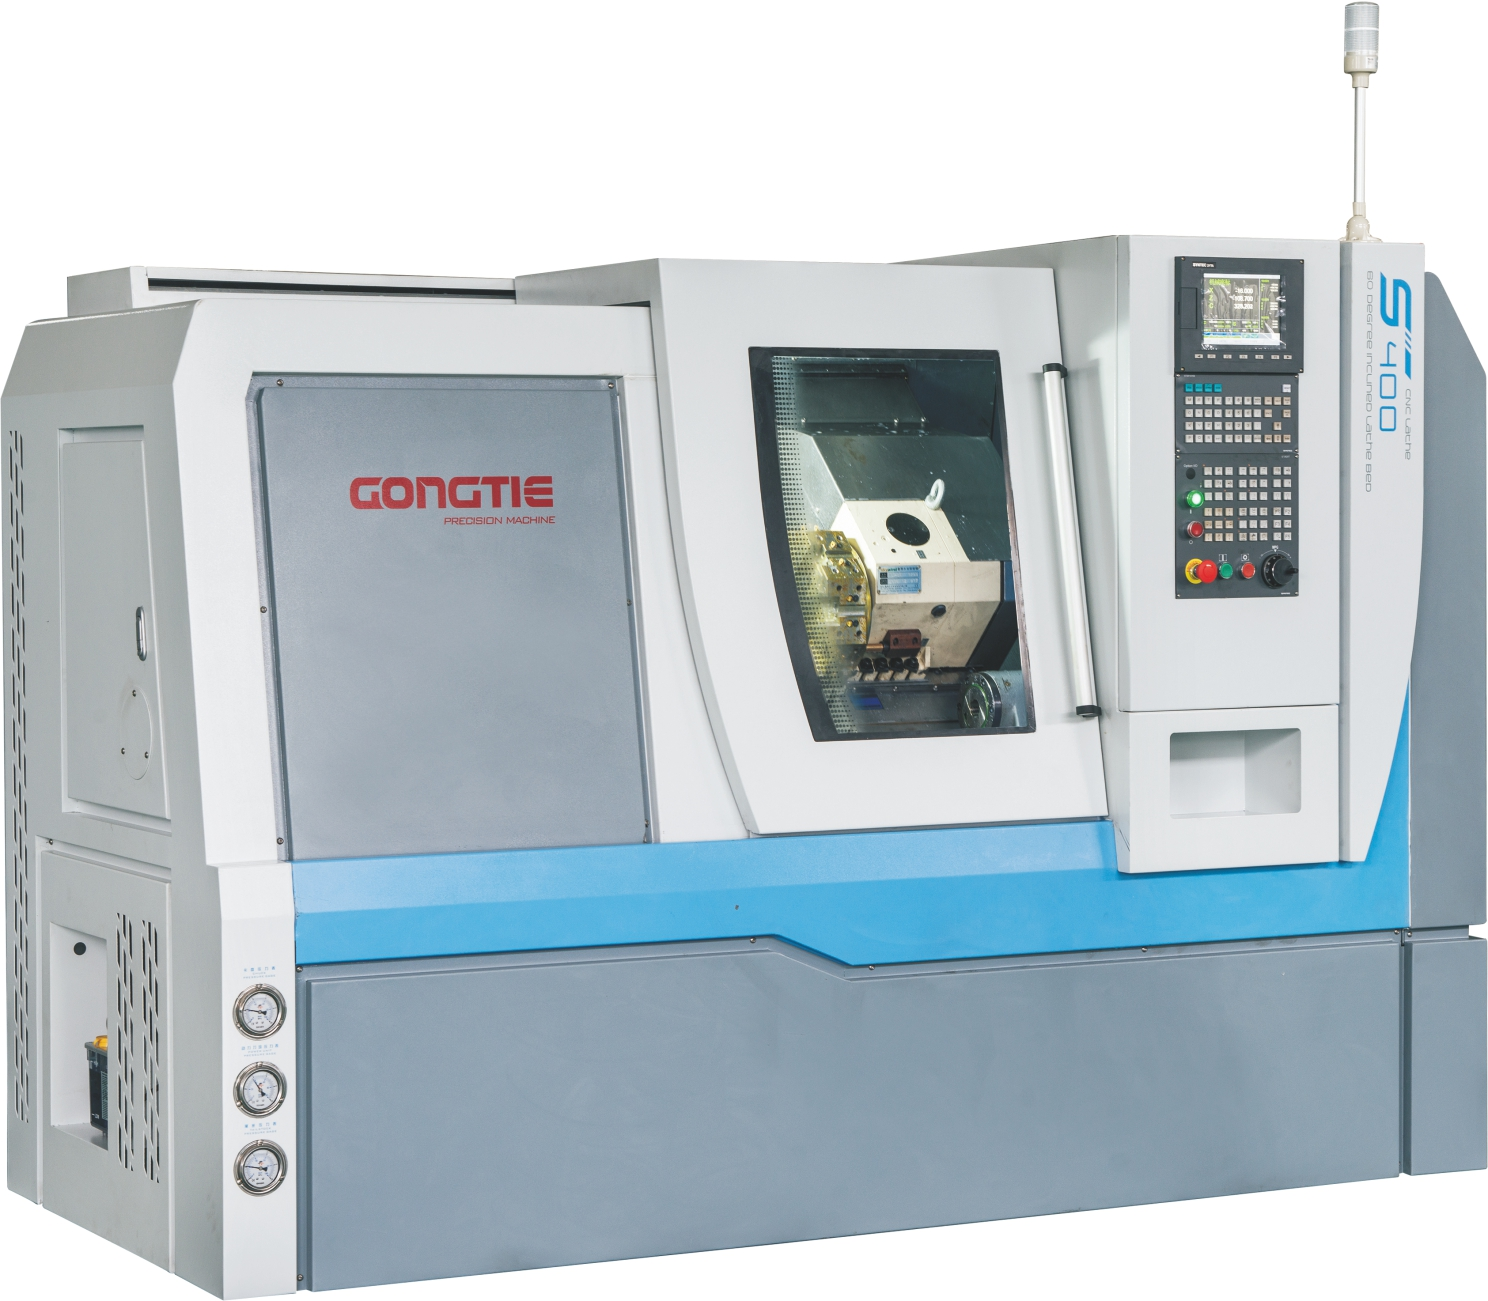 GP630 & GP800 SERIES CNC LATHE WITH SLANT BED IN TURRET